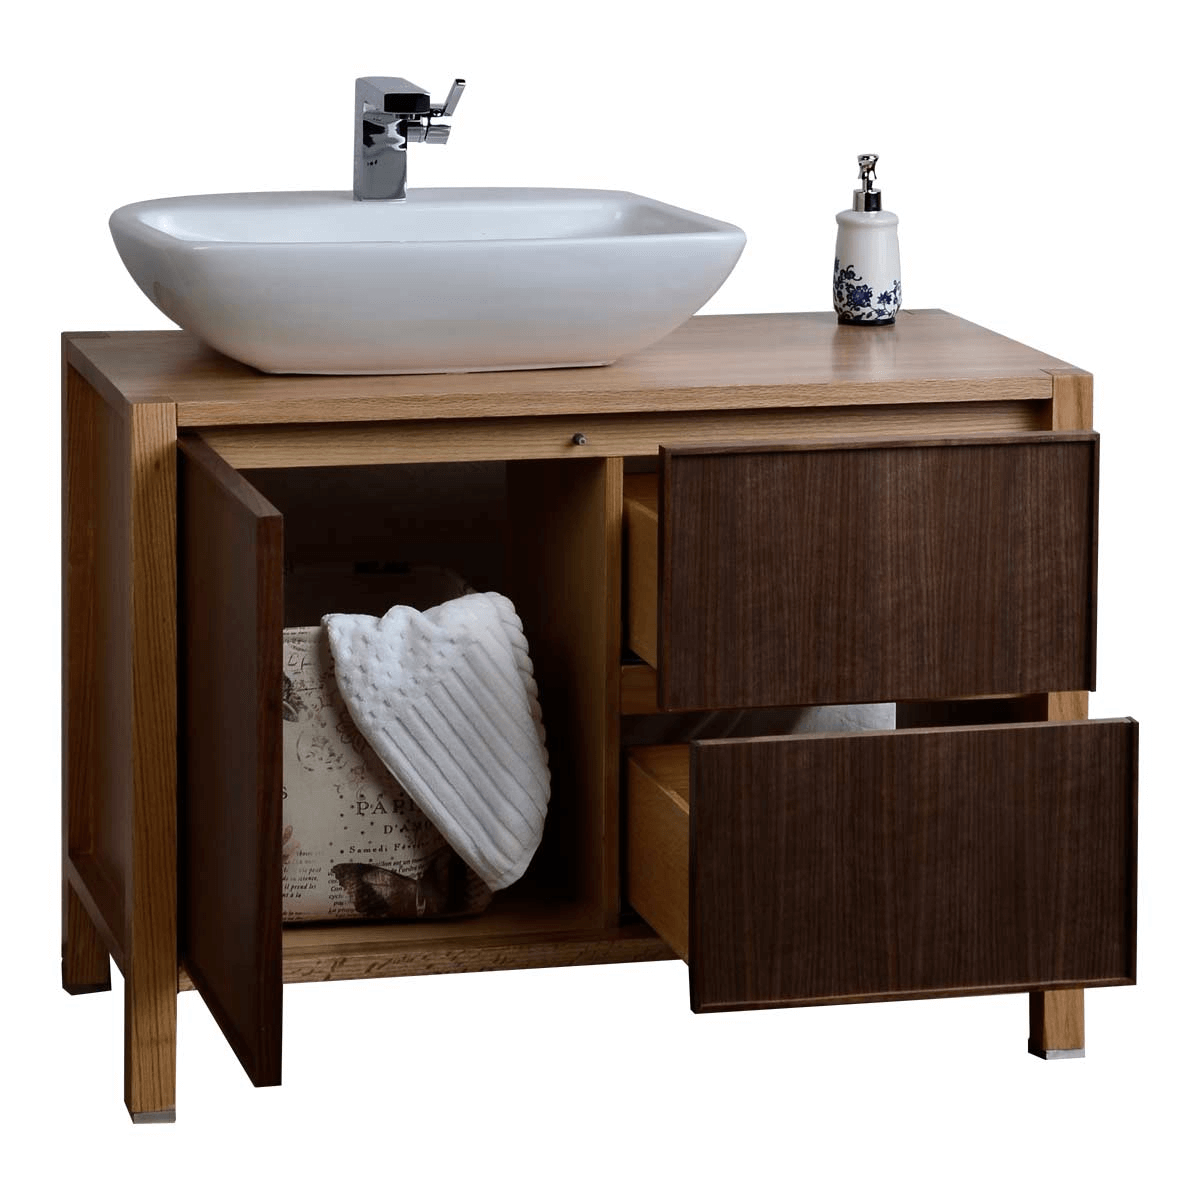 Buying Tips On Bathroom Vanity With Sink On Left Side Types Styles And Materials